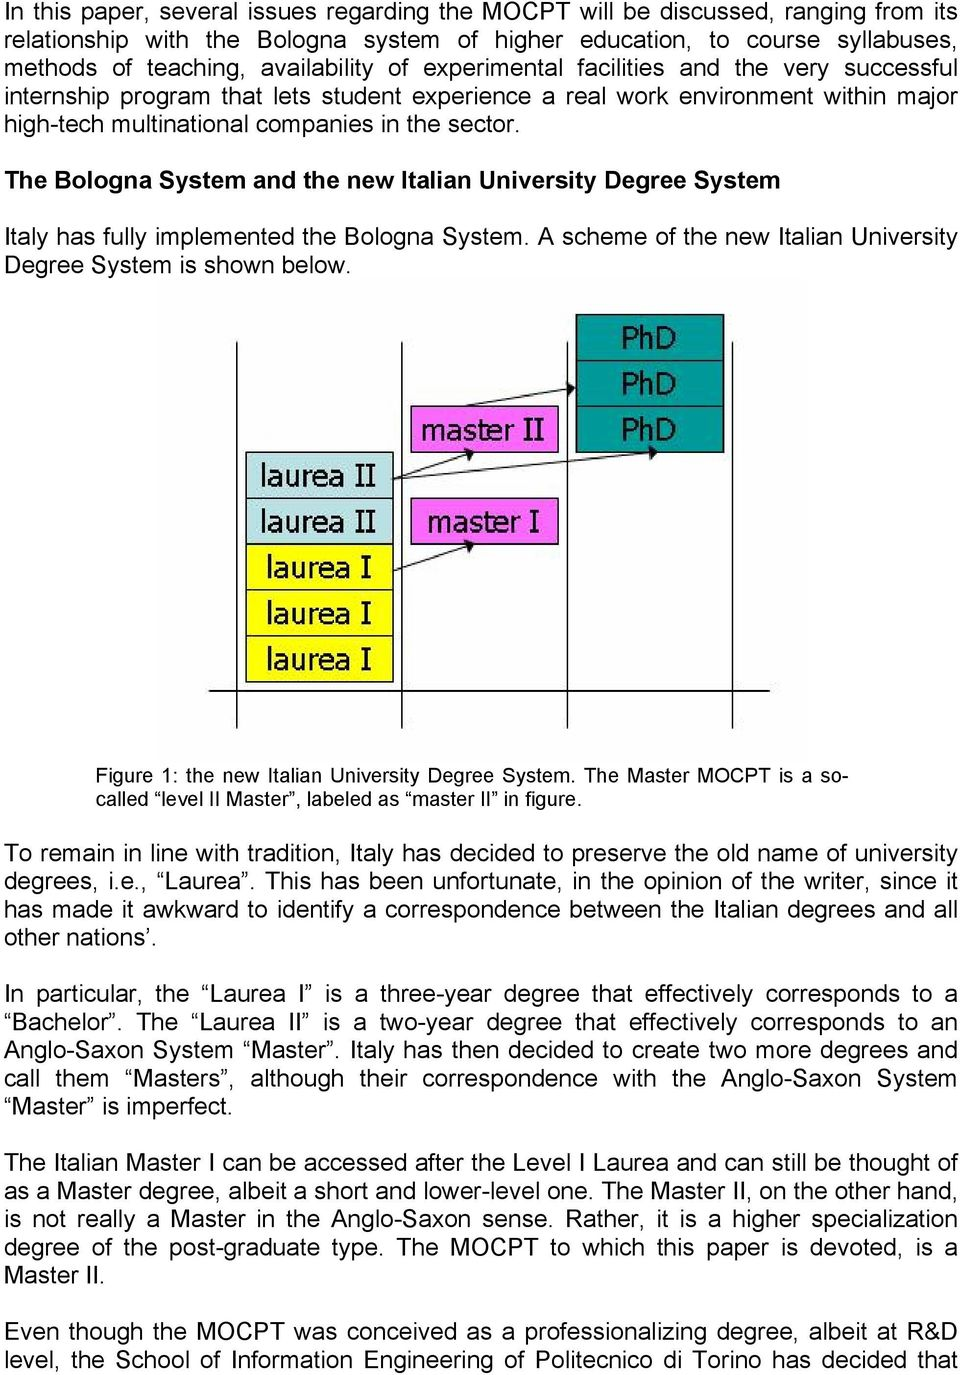 The Bologna System and the new Italian University Degree System Italy has fully implemented the Bologna System. A scheme of the new Italian University Degree System is shown below.